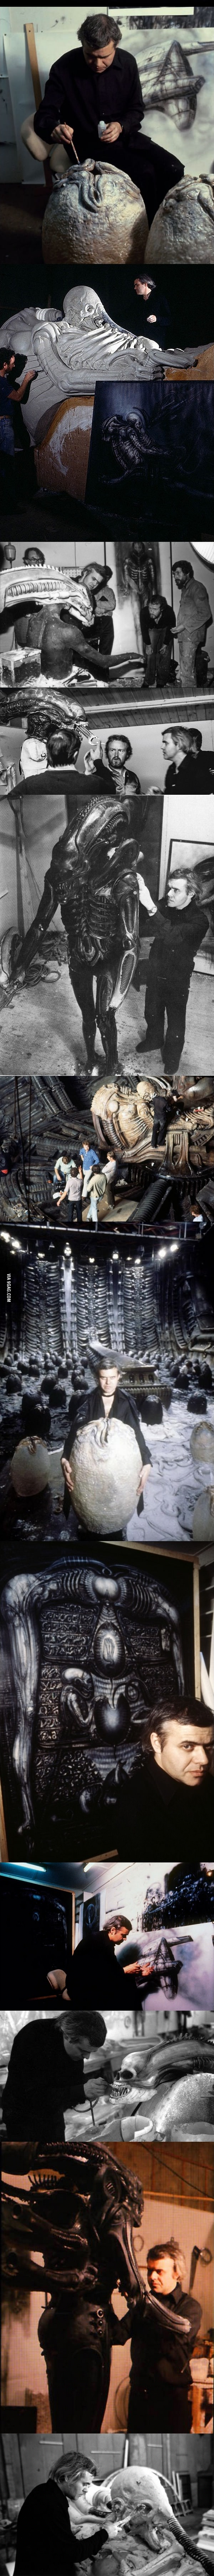 H.R. Giger, on set, creating the props, set-pieces and costumes for 'Alien'